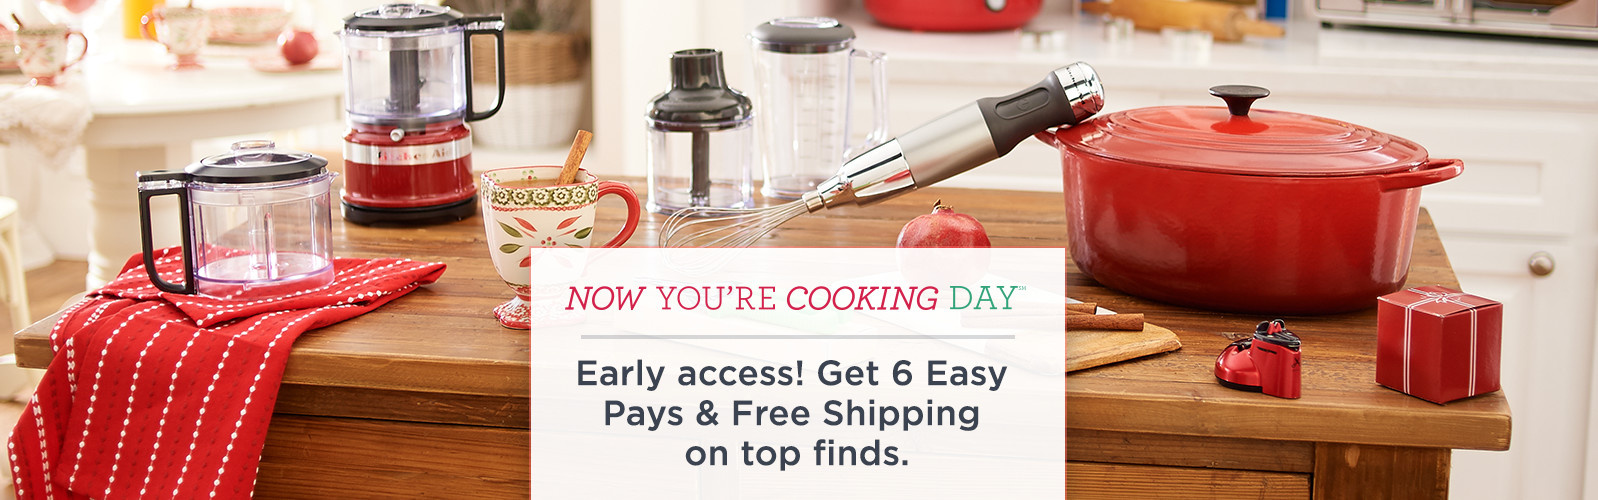 Now You're Cooking Day(SM) —Holiday Edition - Early access! Get 6 Easy Pays & Free Shipping on top finds.